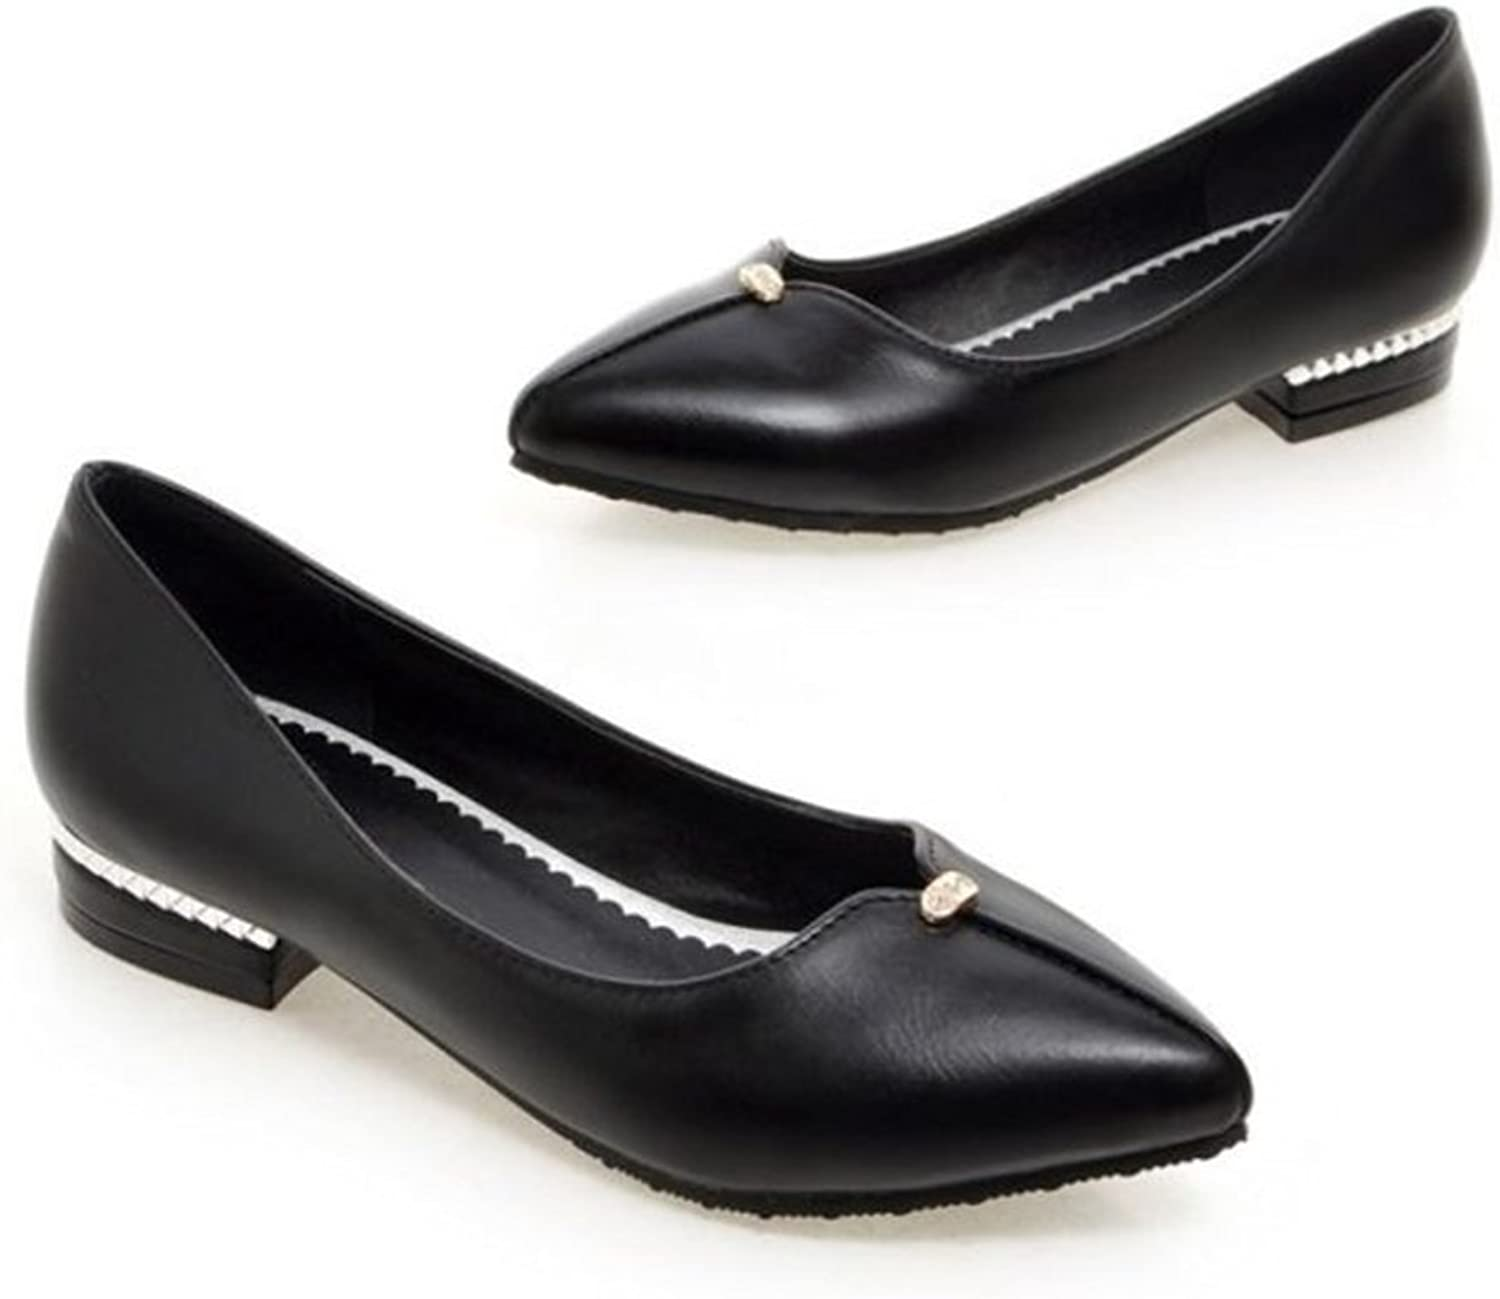 pink town Pointy Toe Slip On Flats Patent Hidden Low Heel Office Daily Walking shoes for Women